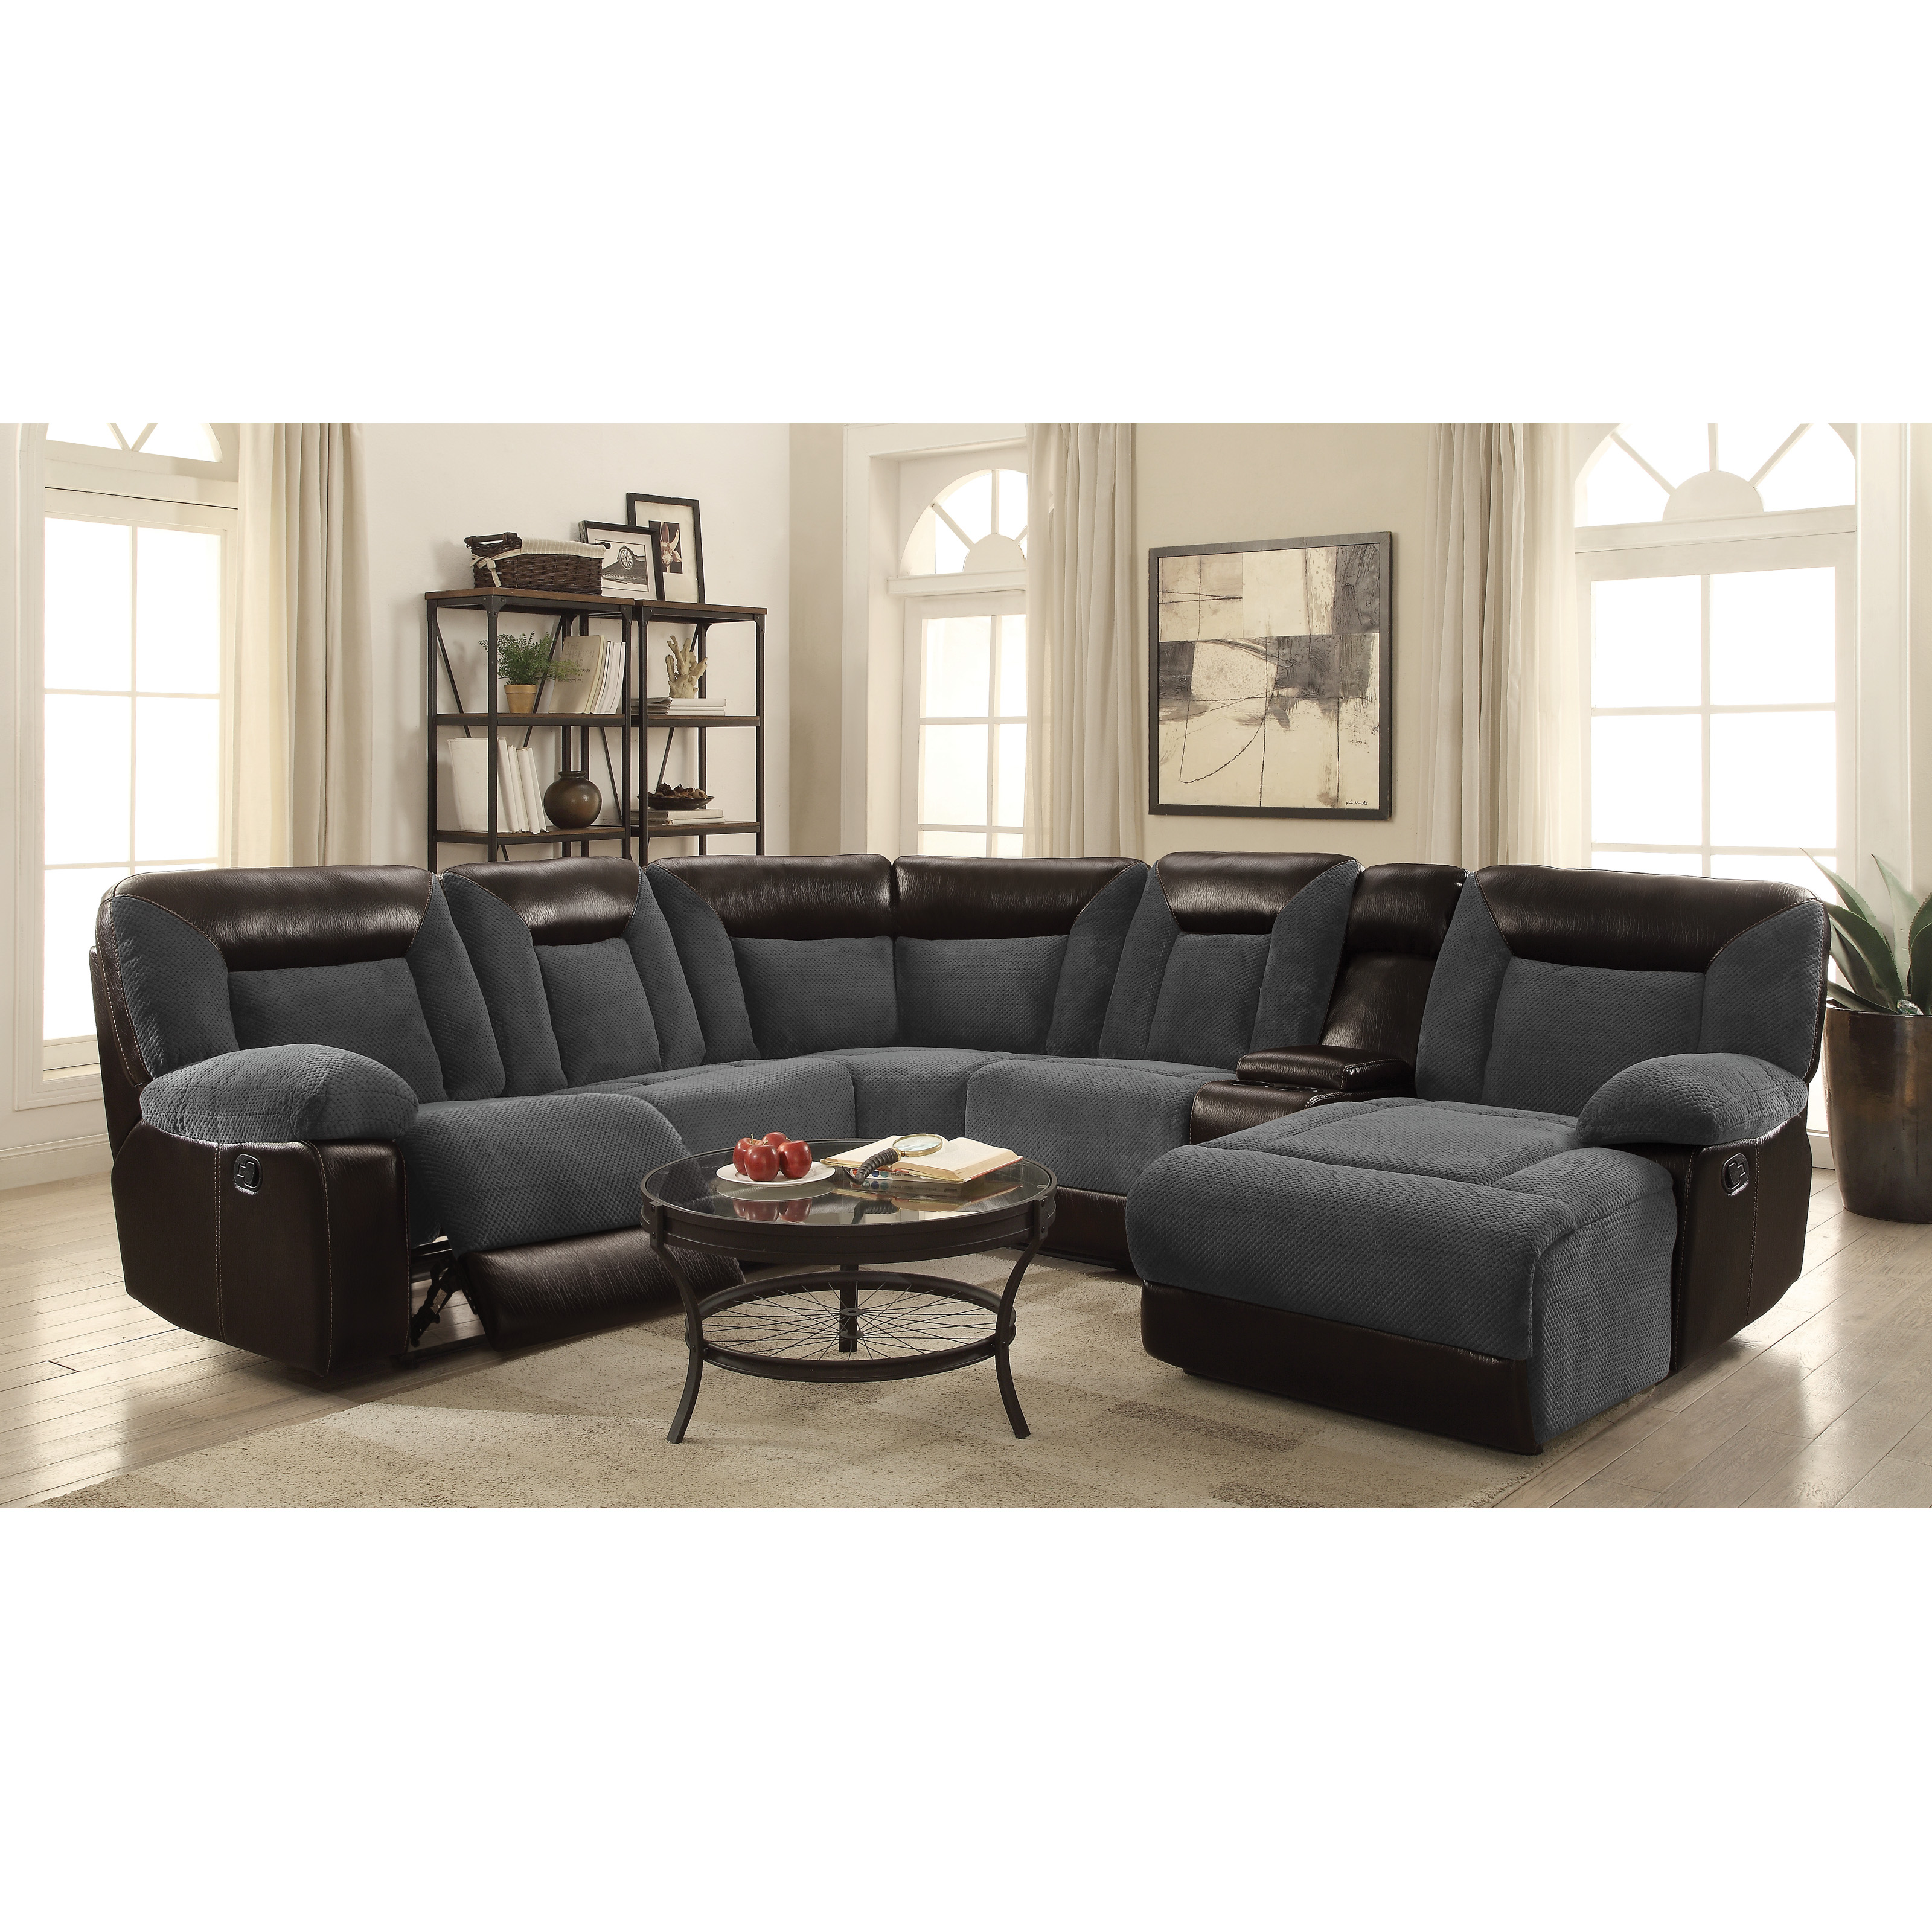 Coaster Furniture Cybele 6 Piece Reclining Sectional